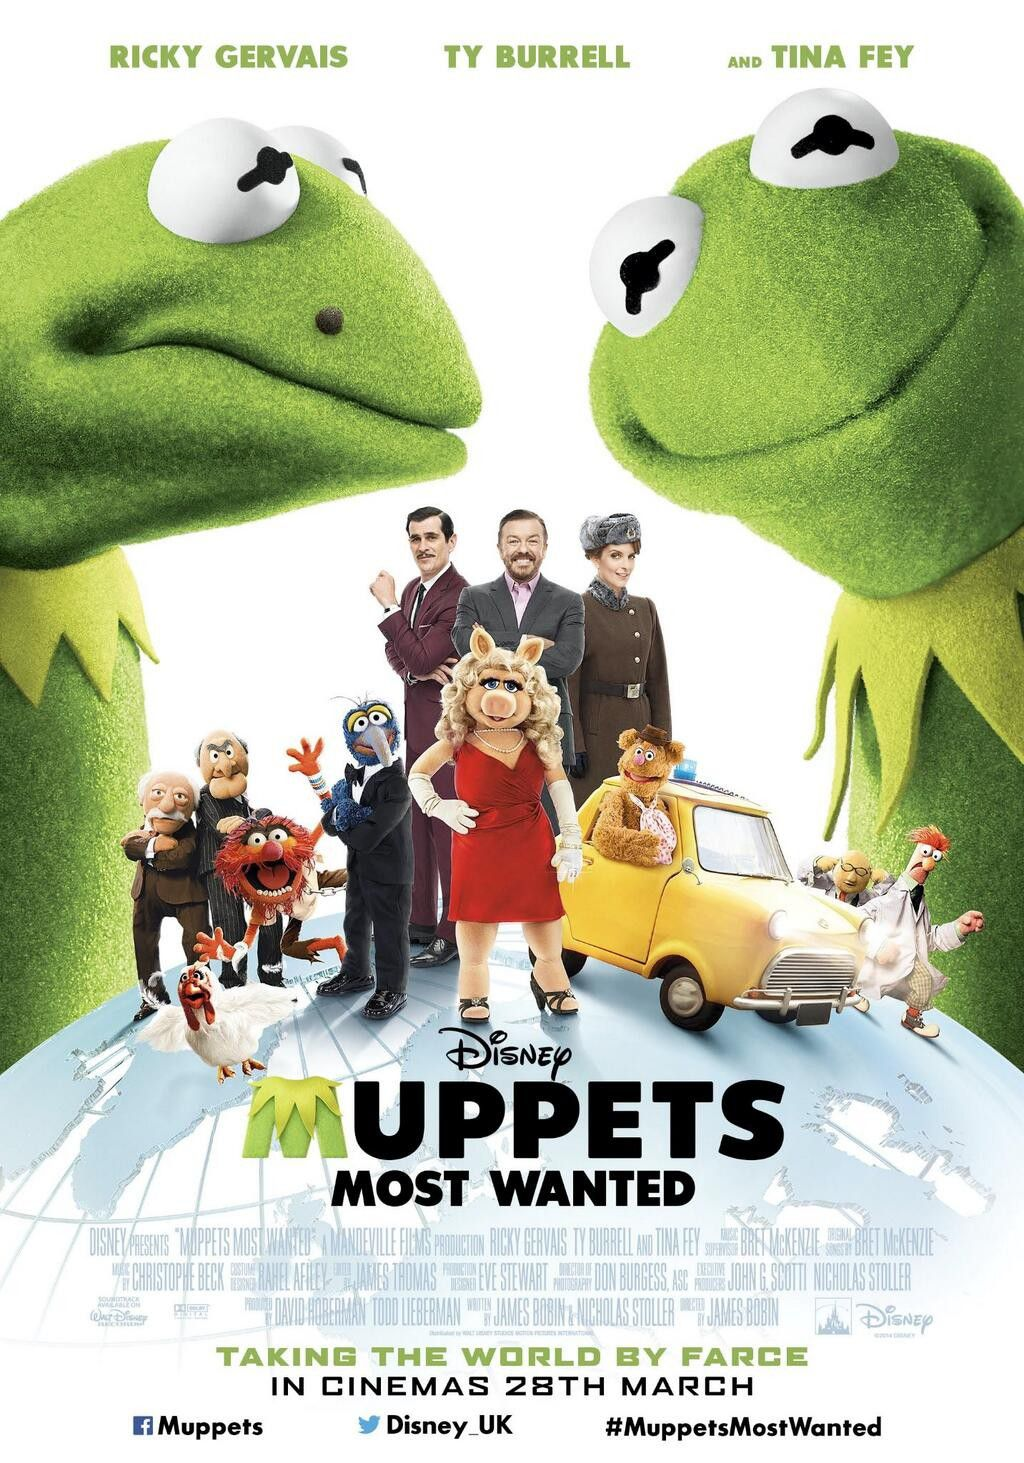 Muppets Most Wanted (2014) - Kermit adventure film poster